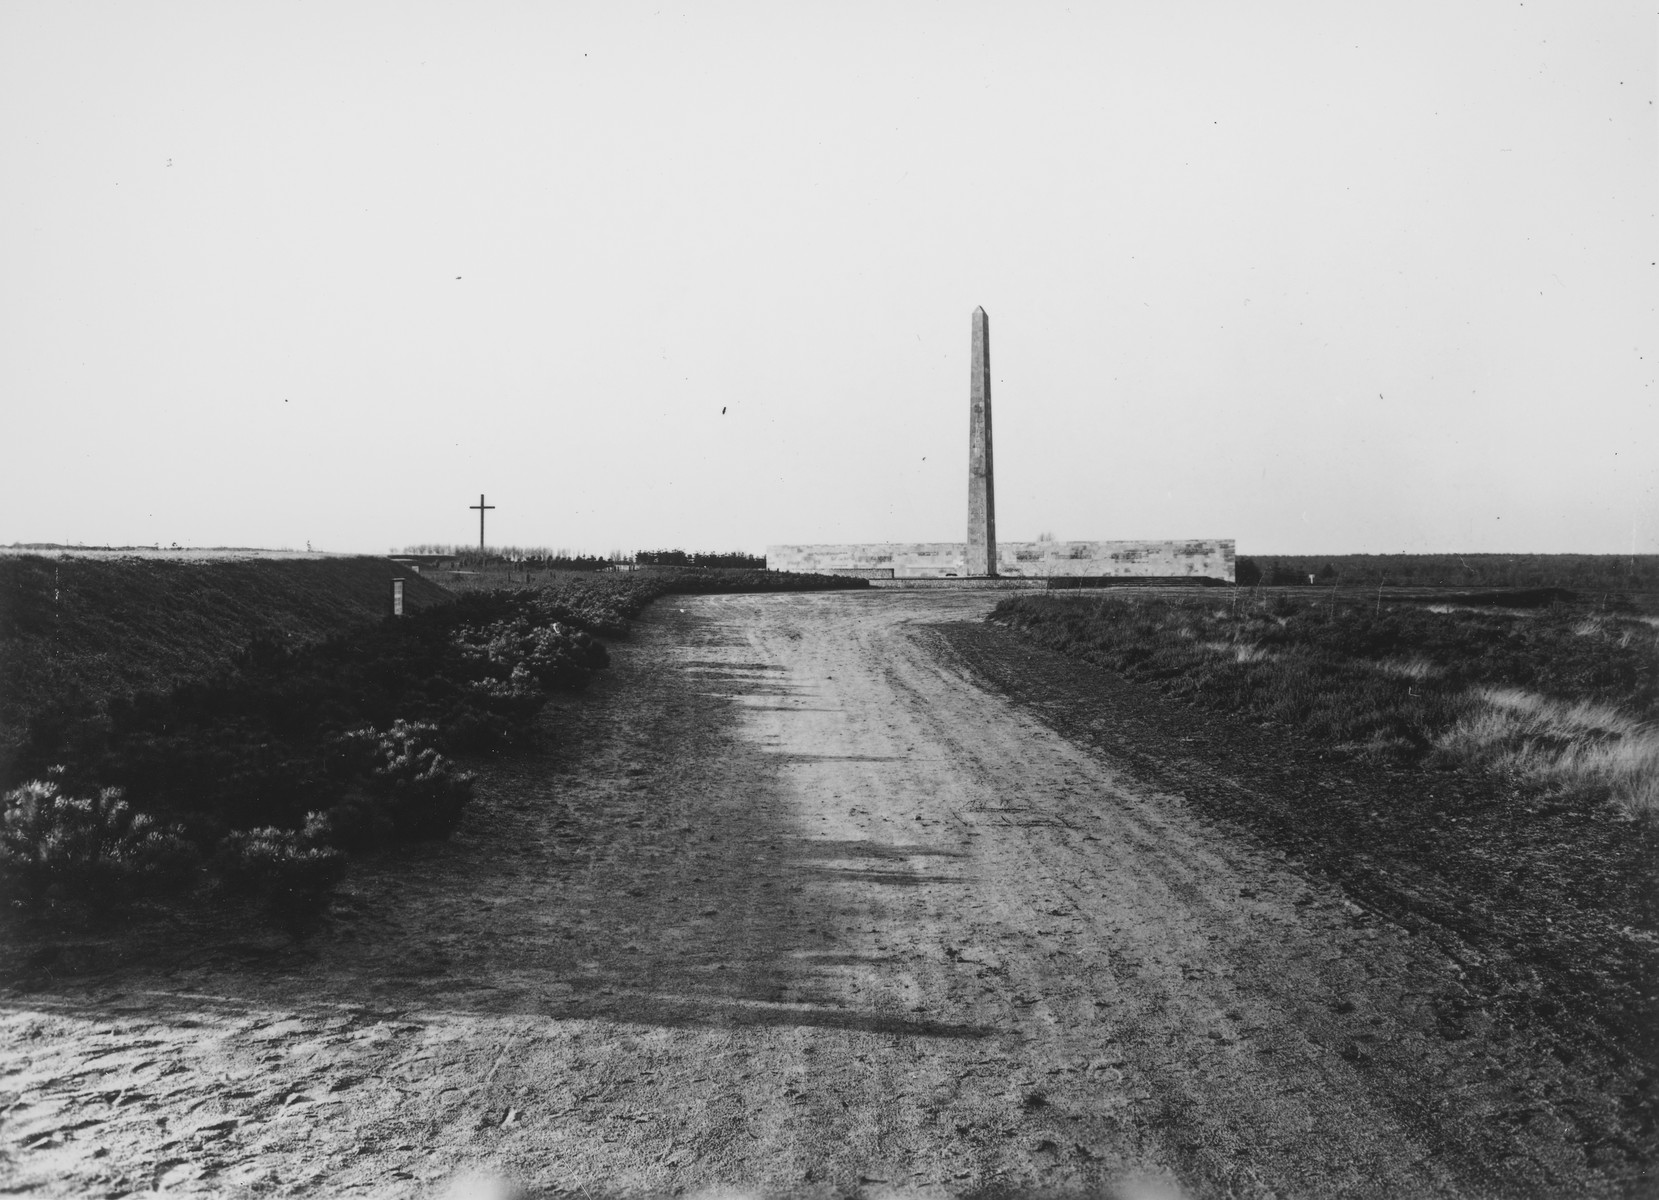 A memorial obelisk erected in memory of persons killed in Bergen-Belsen.